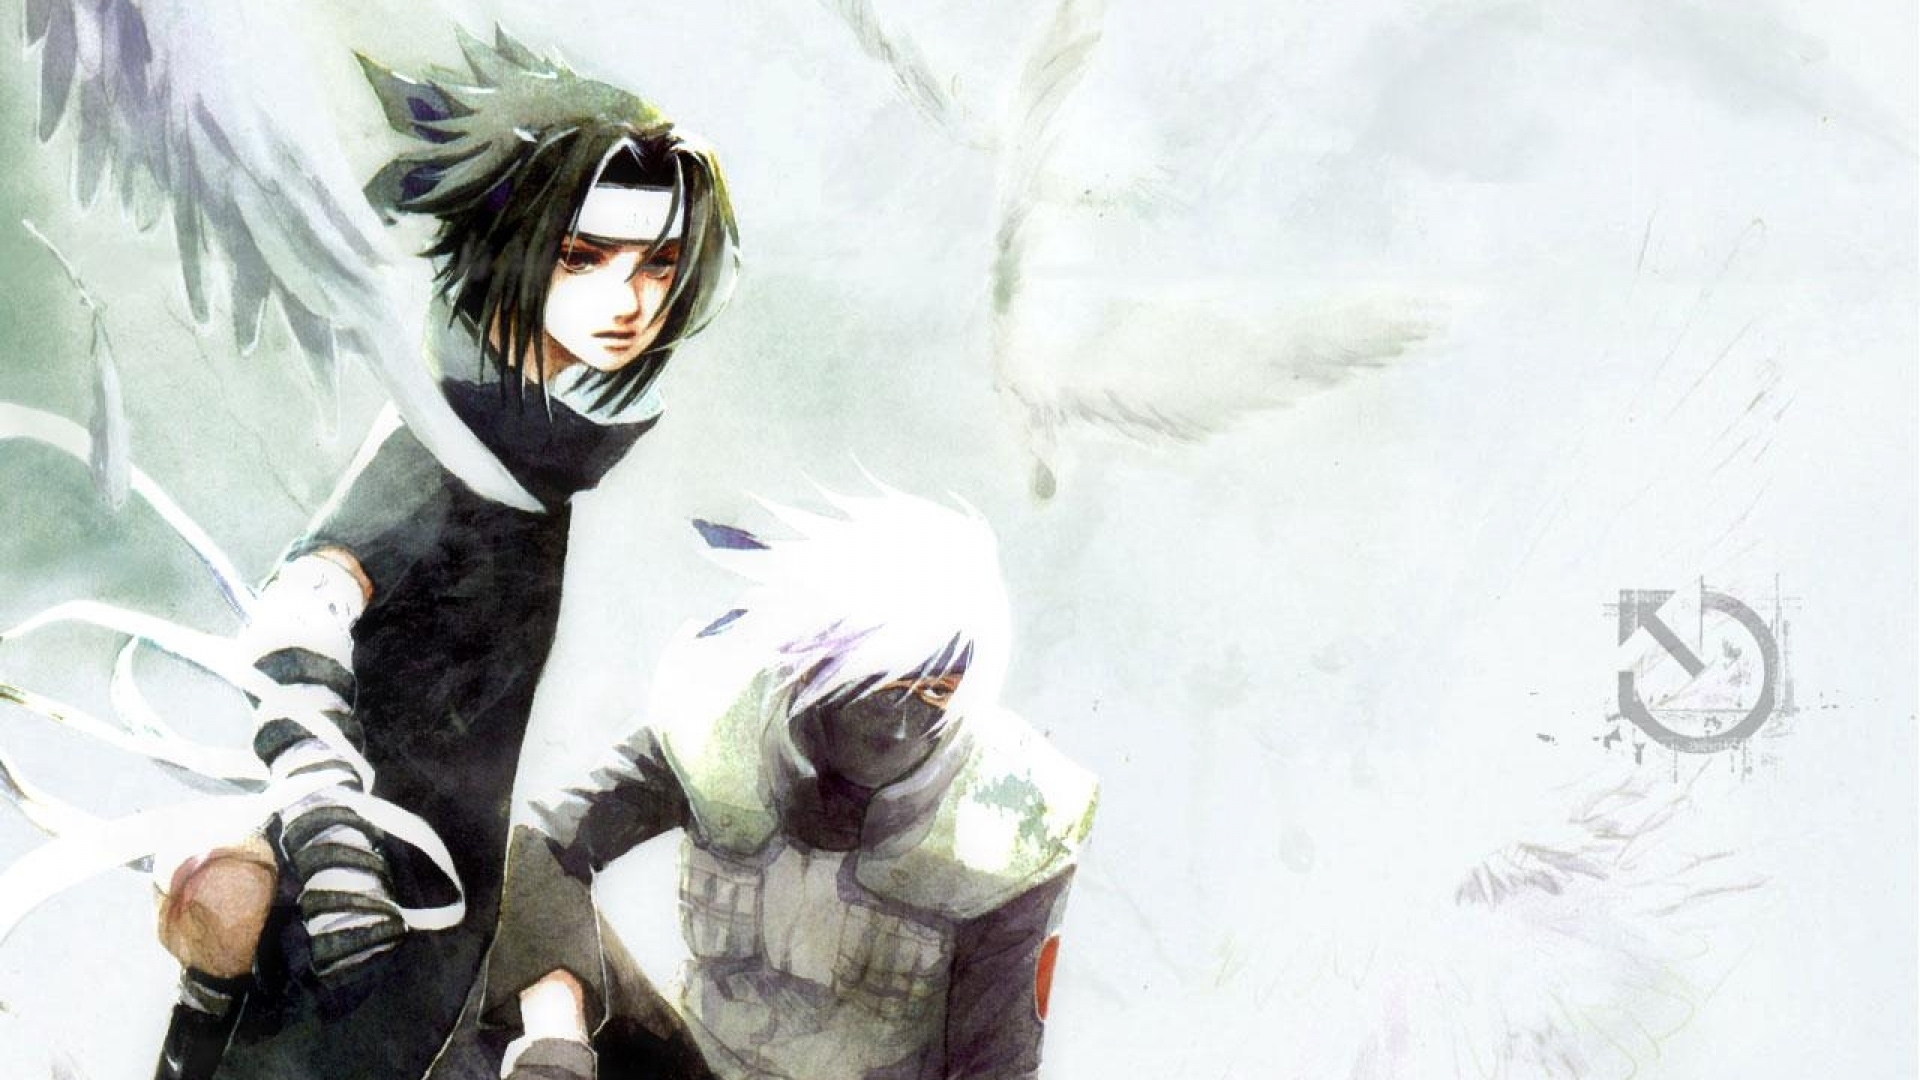 sasuke uchiha young kakashi hatake full hd wallpaper 1080p